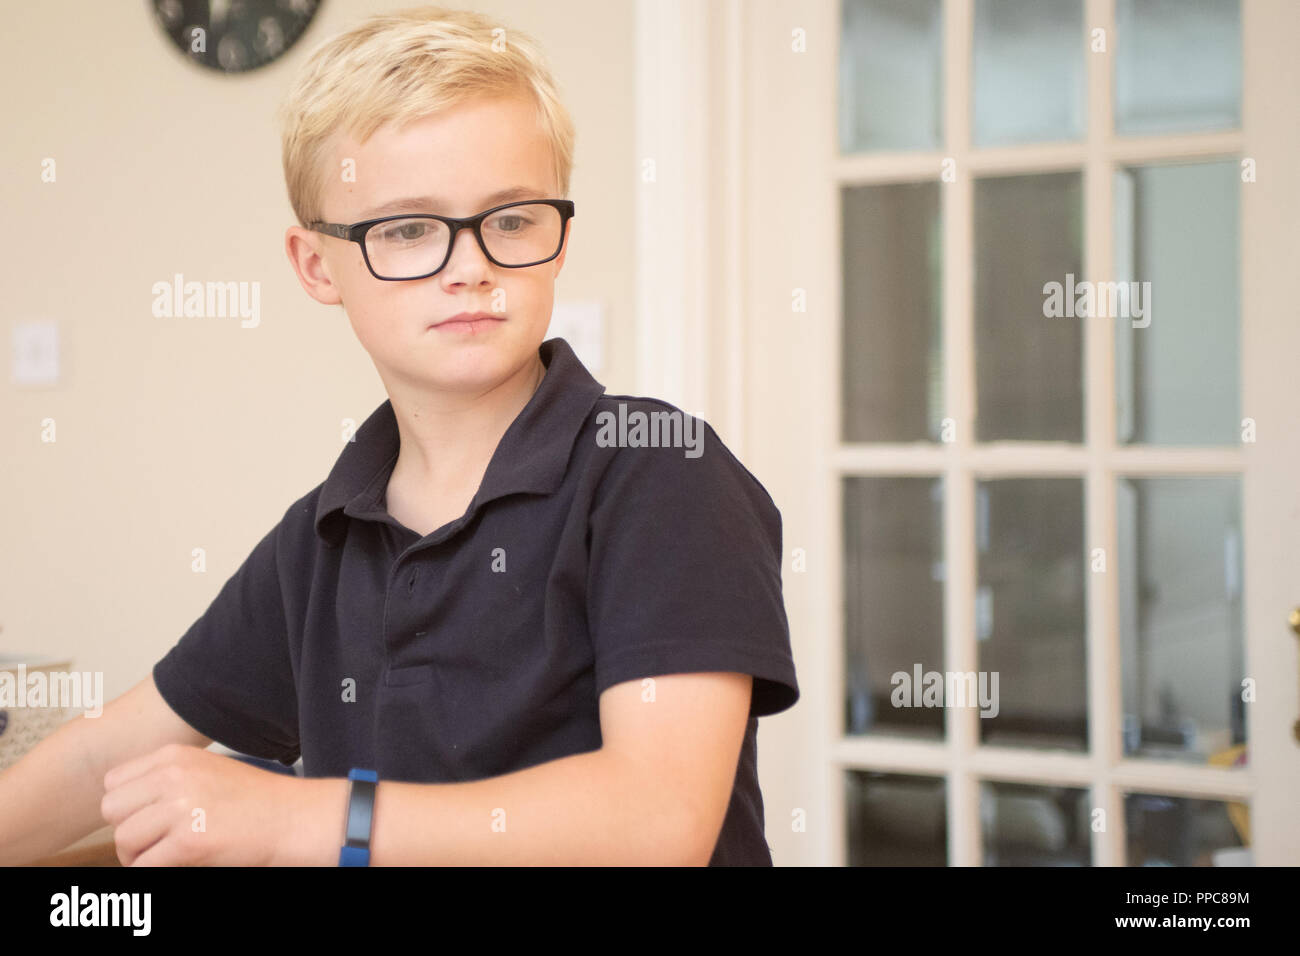 boy wearing glasses white glass door in background - Stock Image